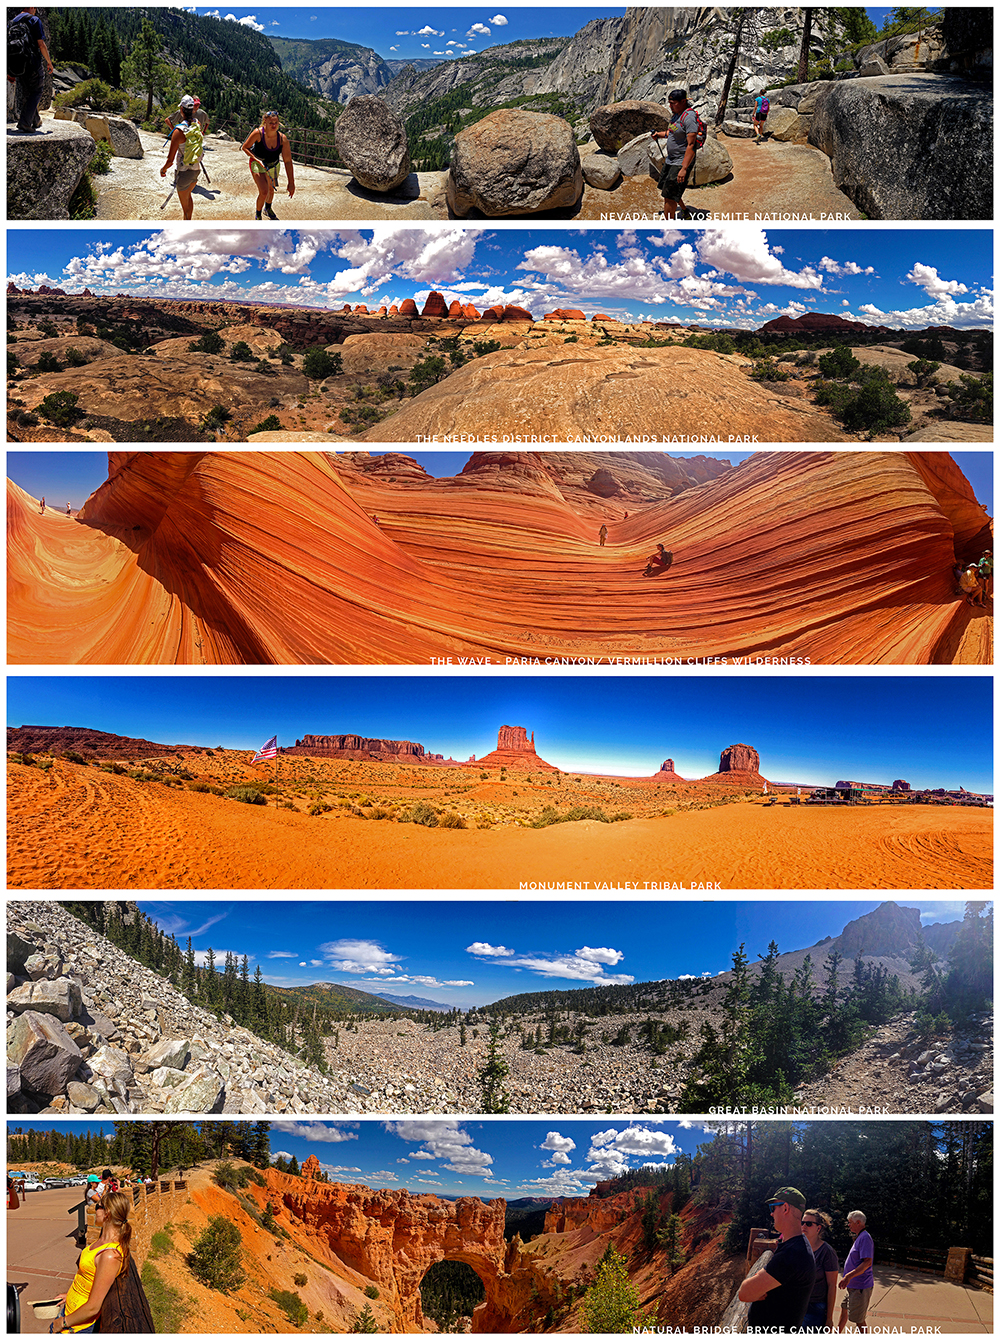 American Southwest 2014 Panorama Poster_05